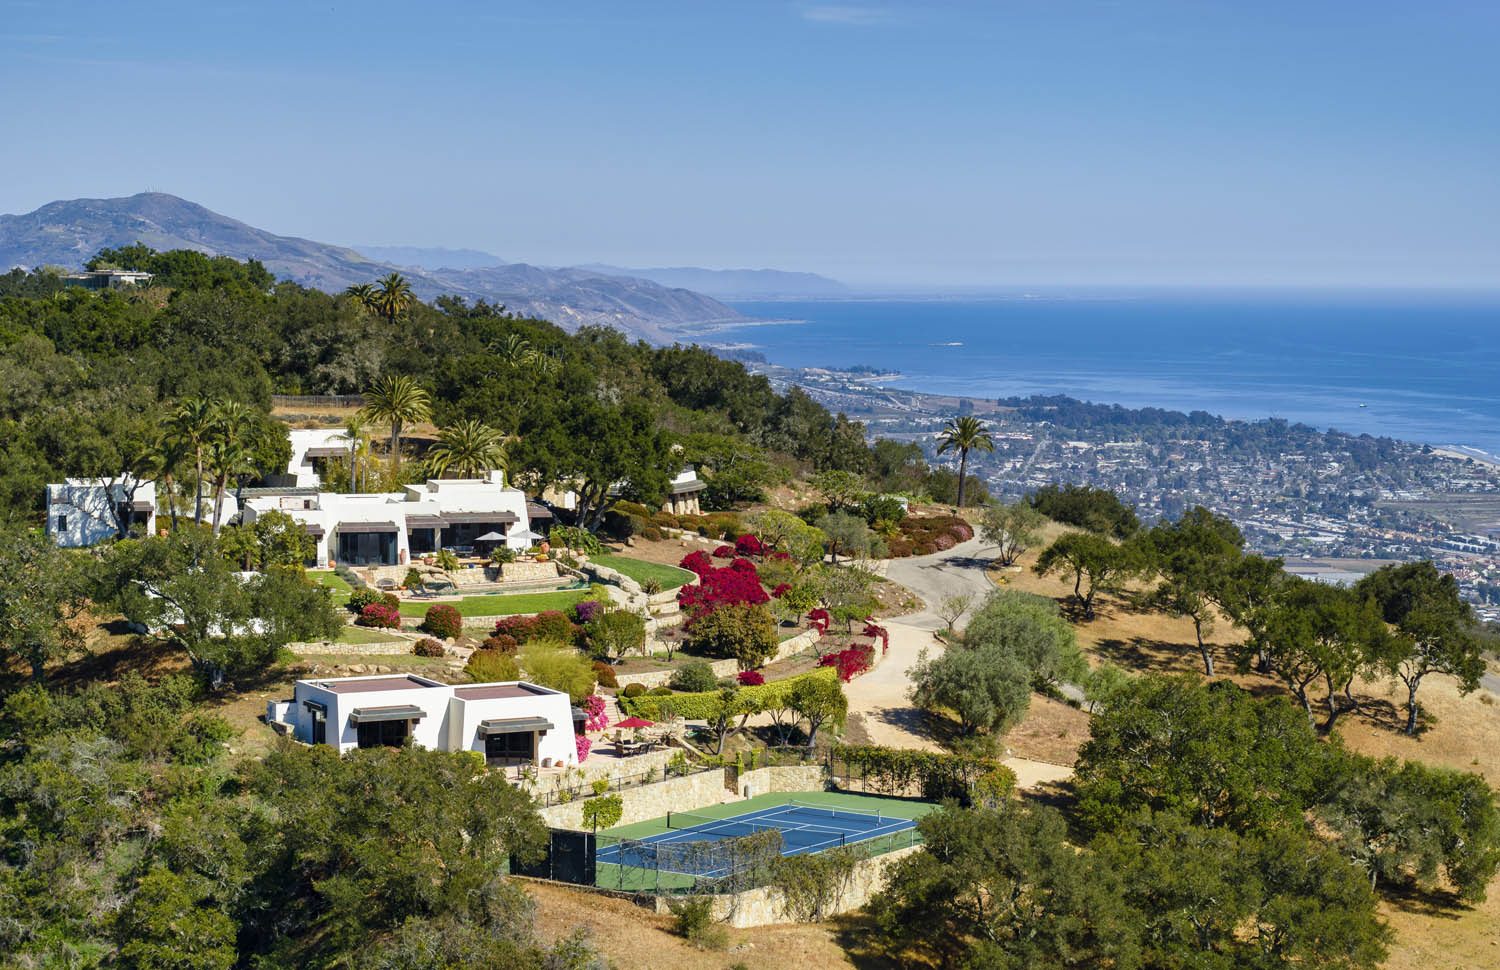 hilltop haven with modern adobe-style homes at 560 toro canyon park road in montecito